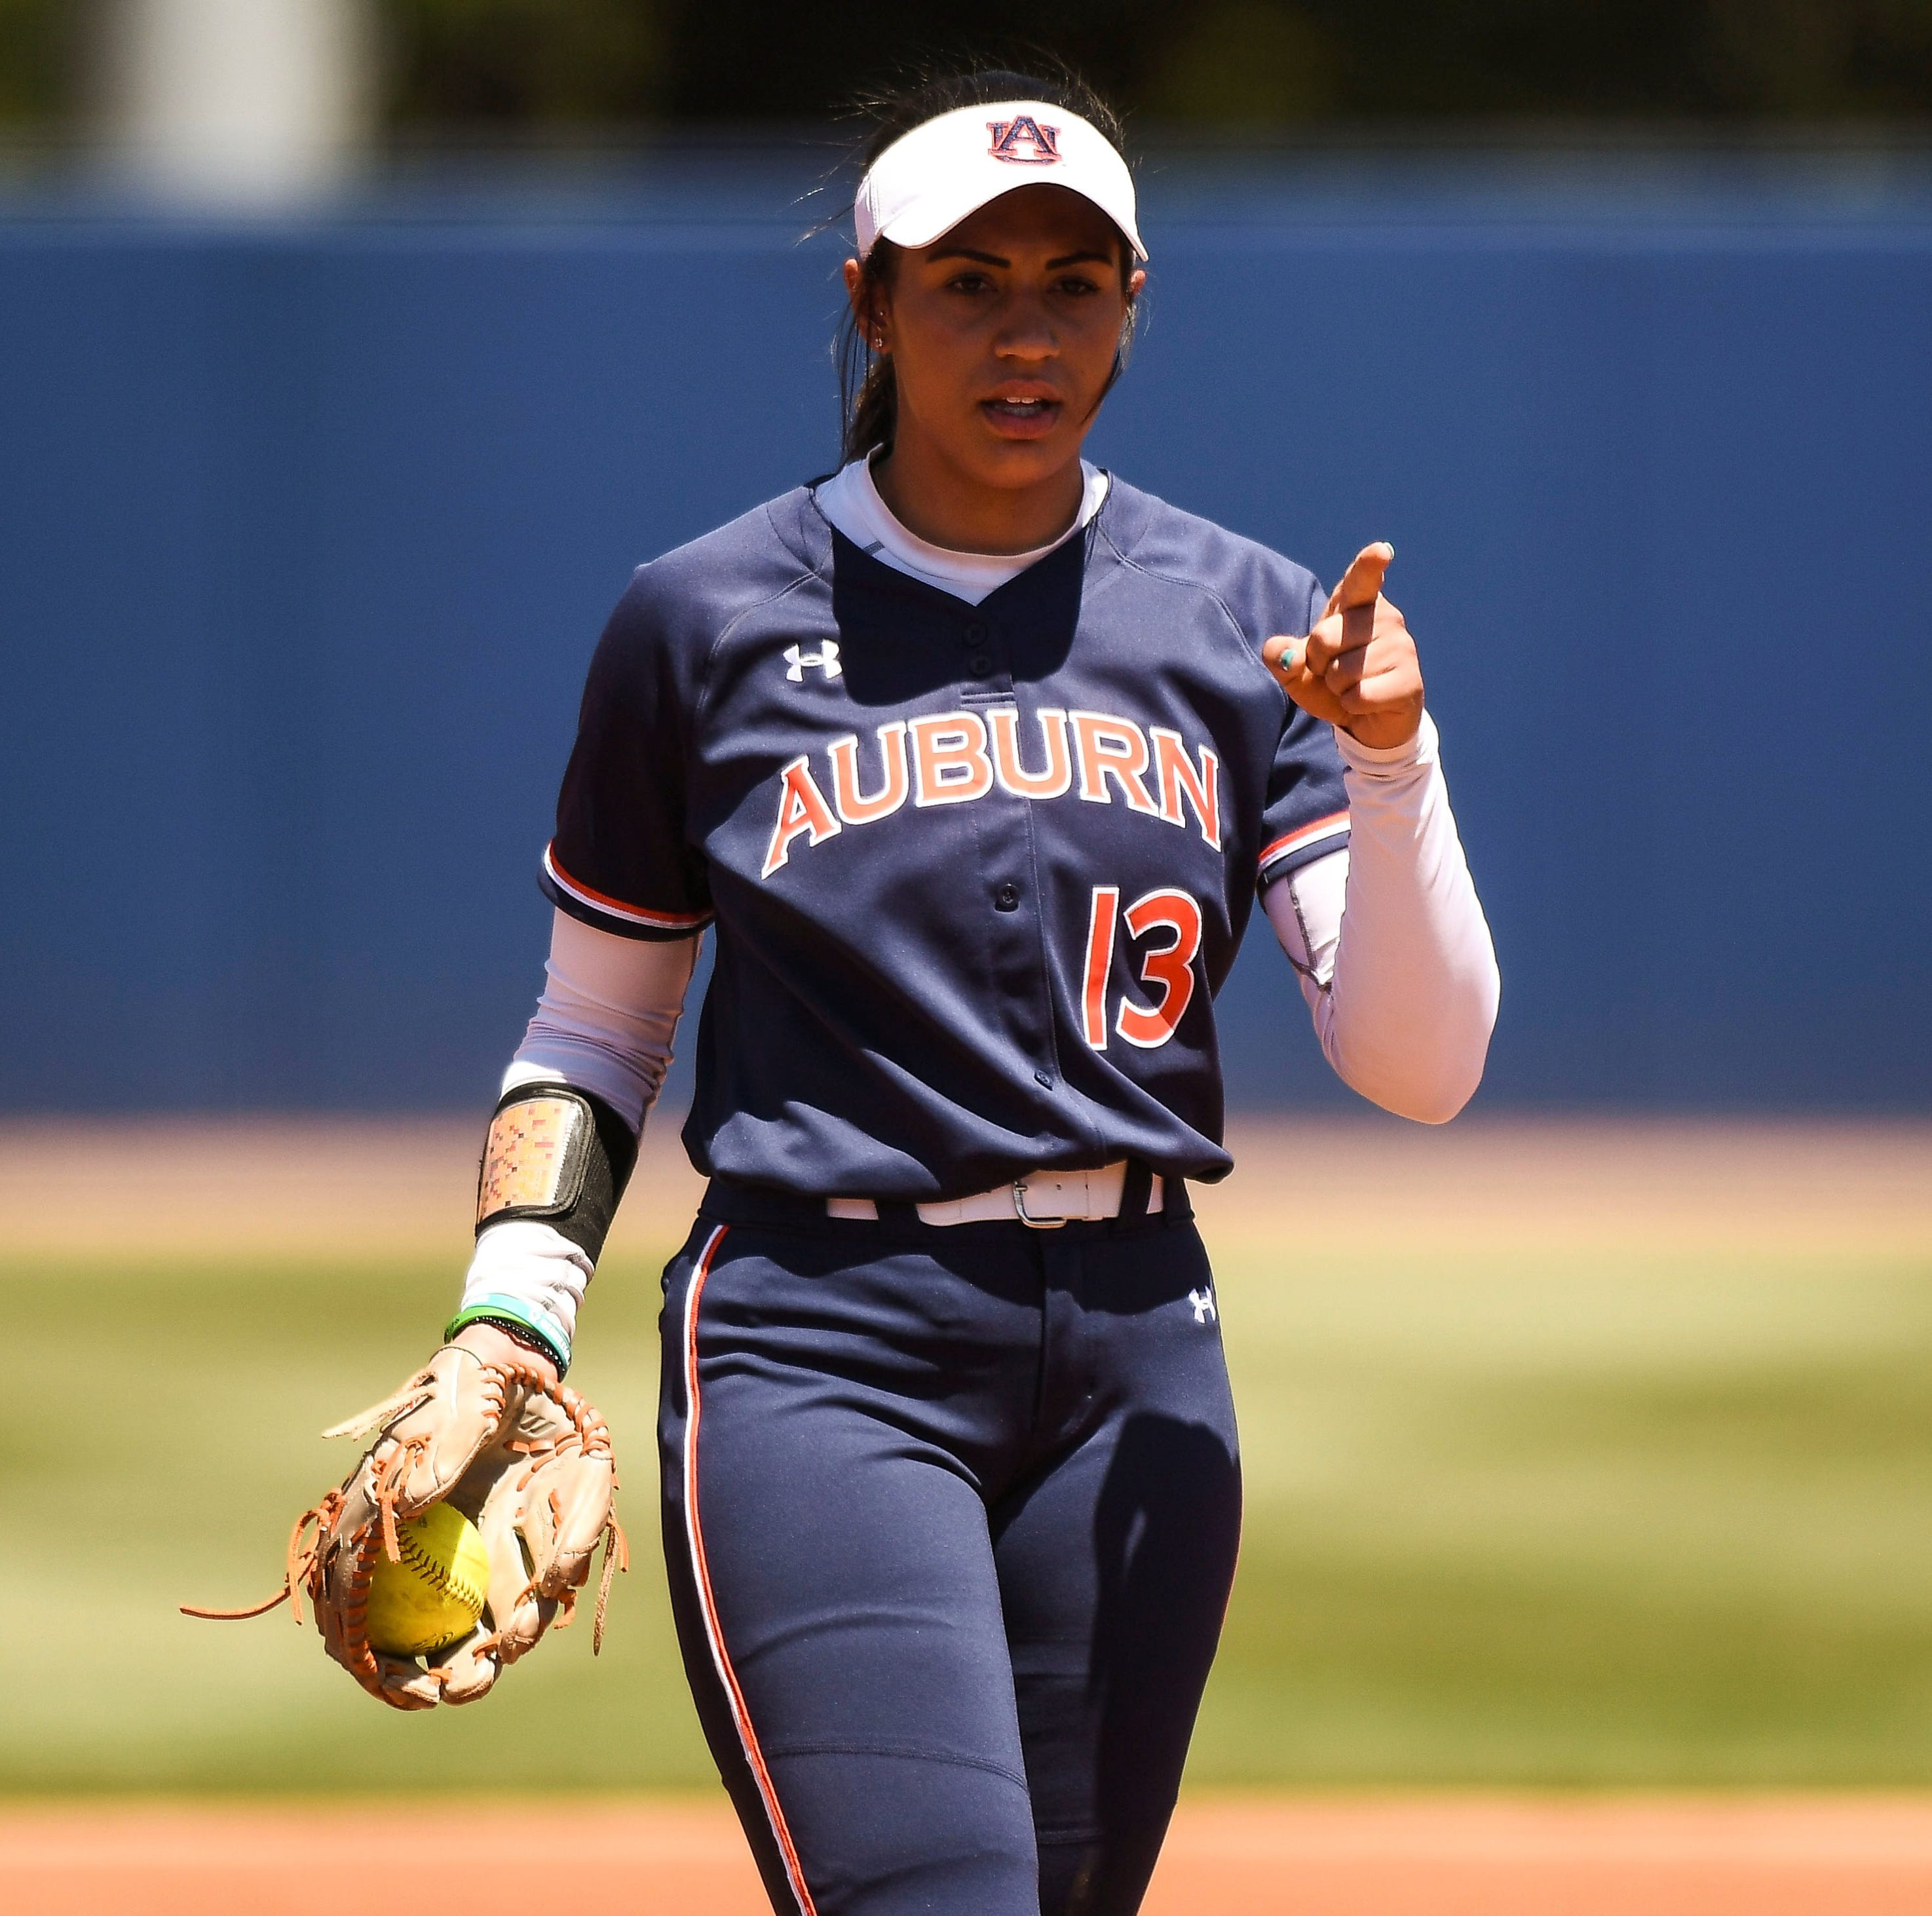 SEC Softball Tournament 2019: How to watch Auburn vs. Missouri on TV, stream online